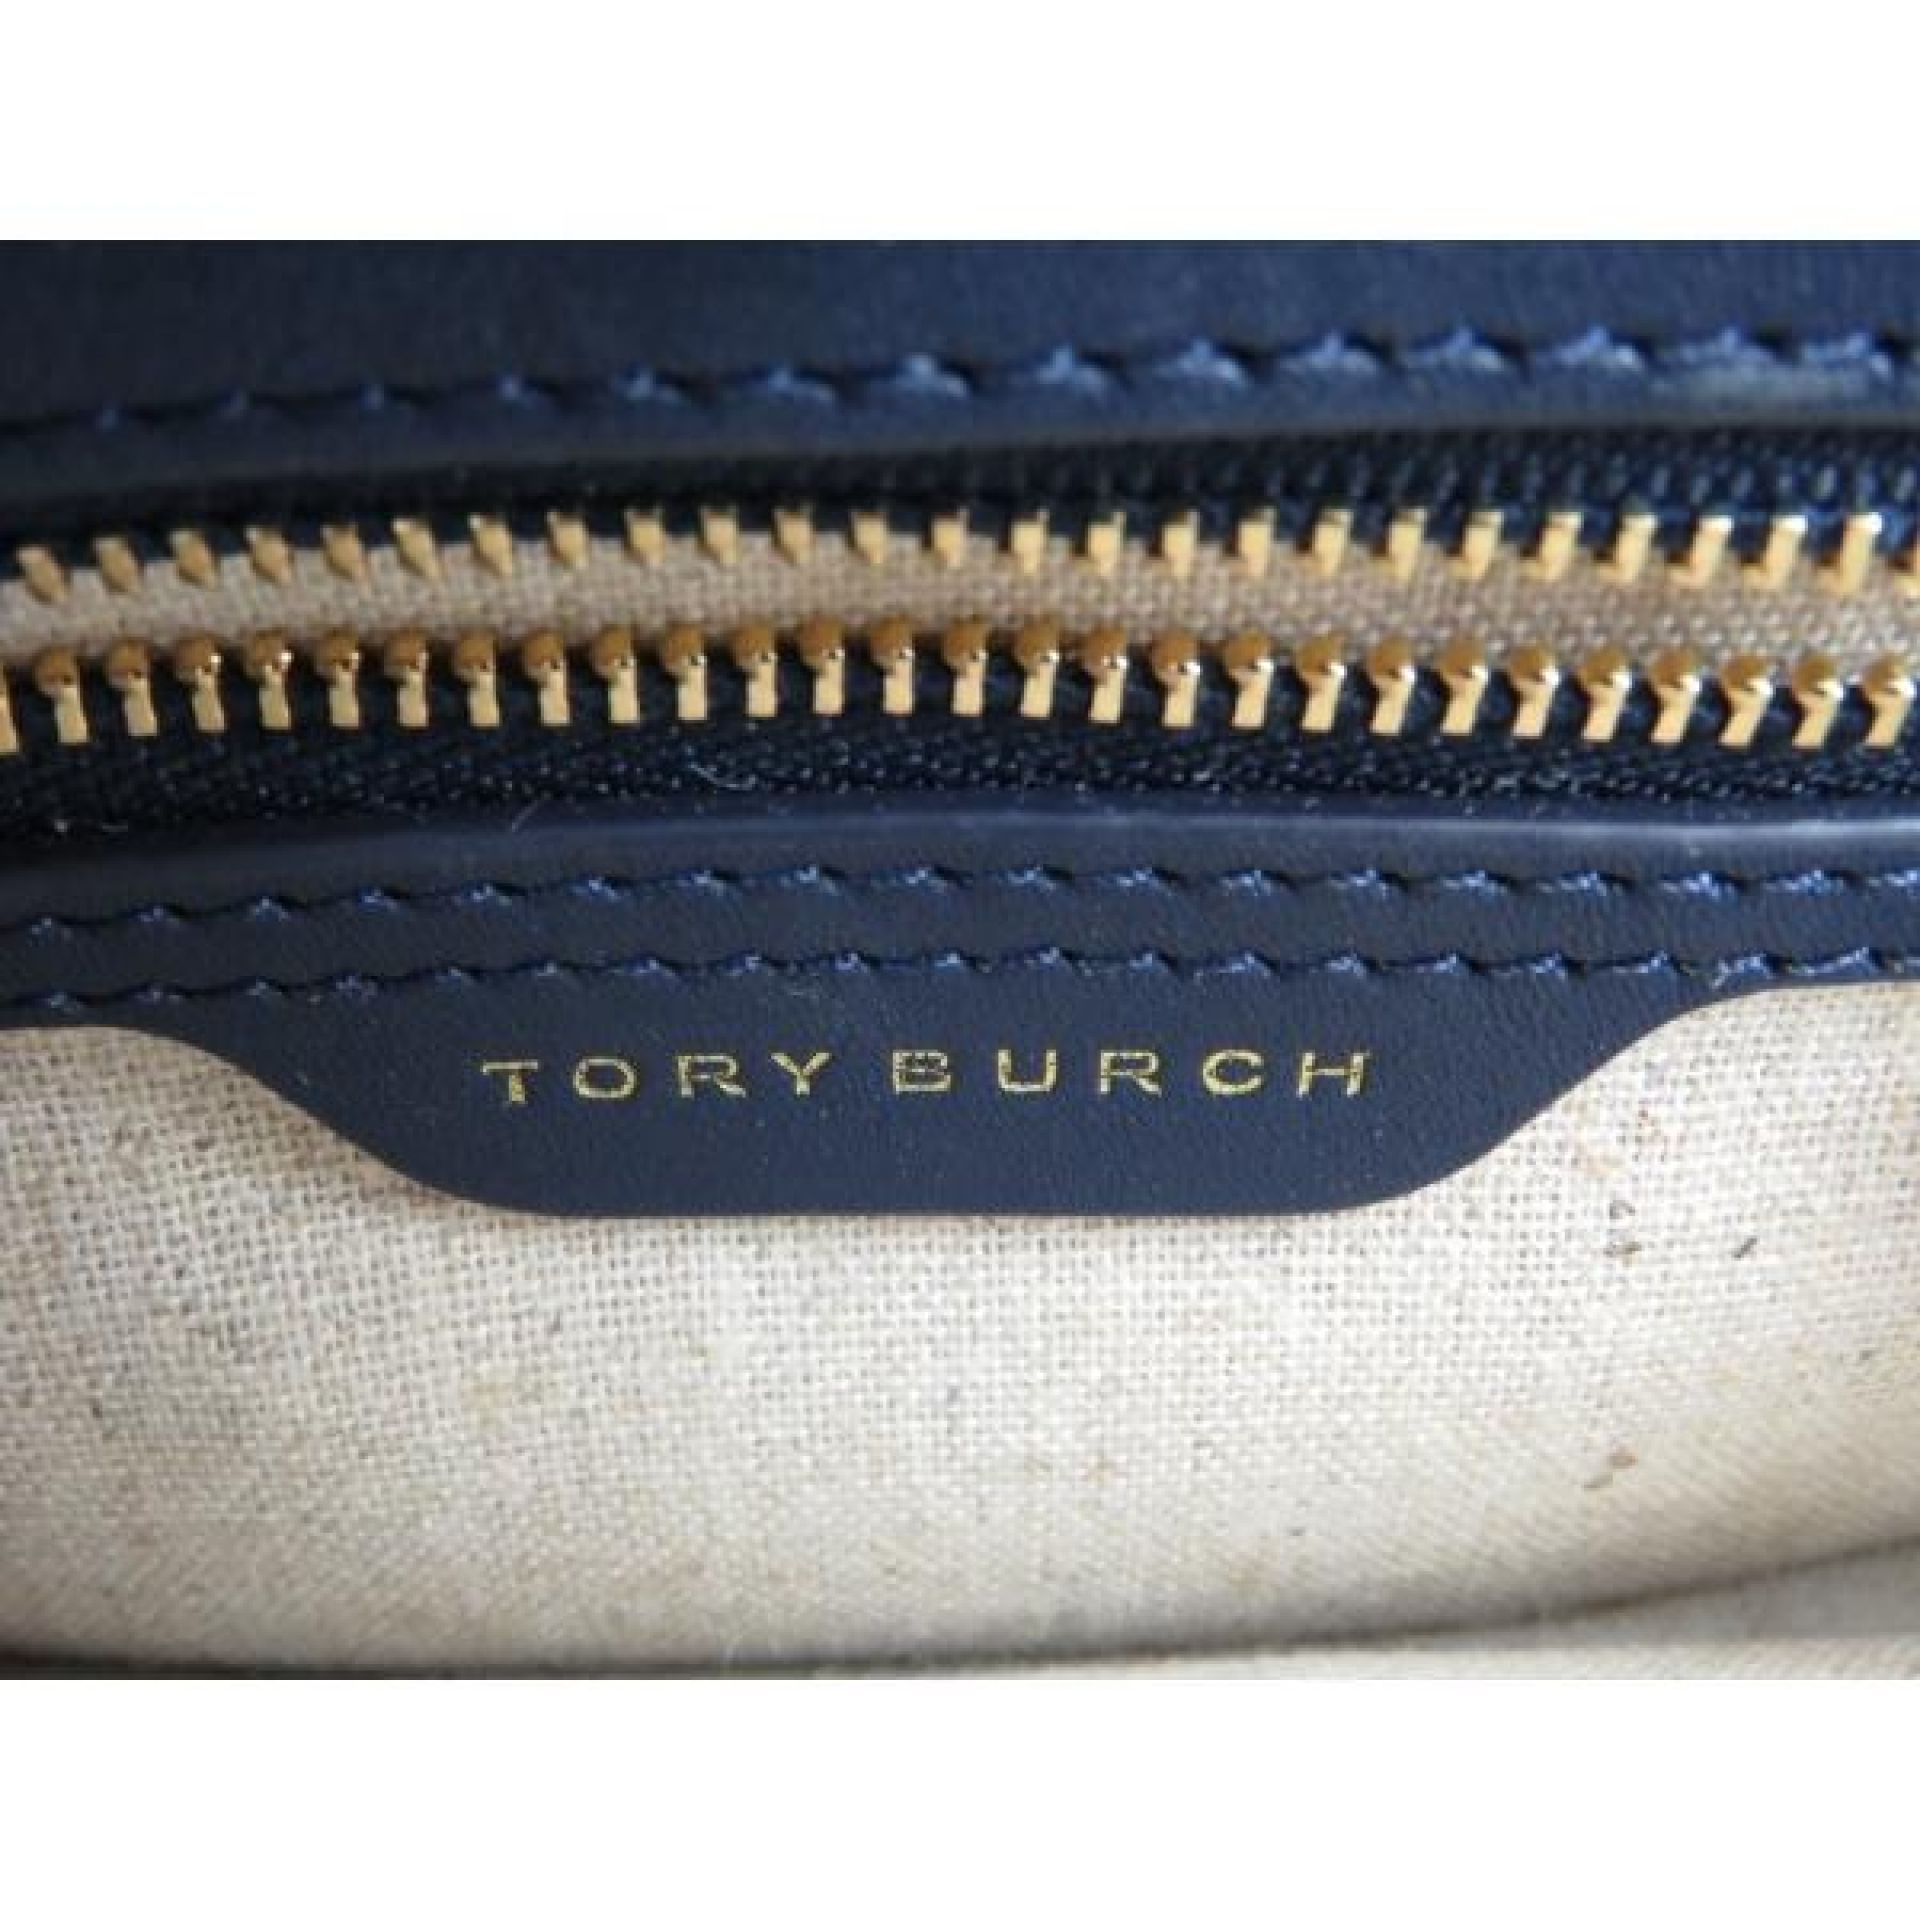 Tory Burch Navy Blue Leather Polka Dot Gemini Link Medium Shoulder Bag